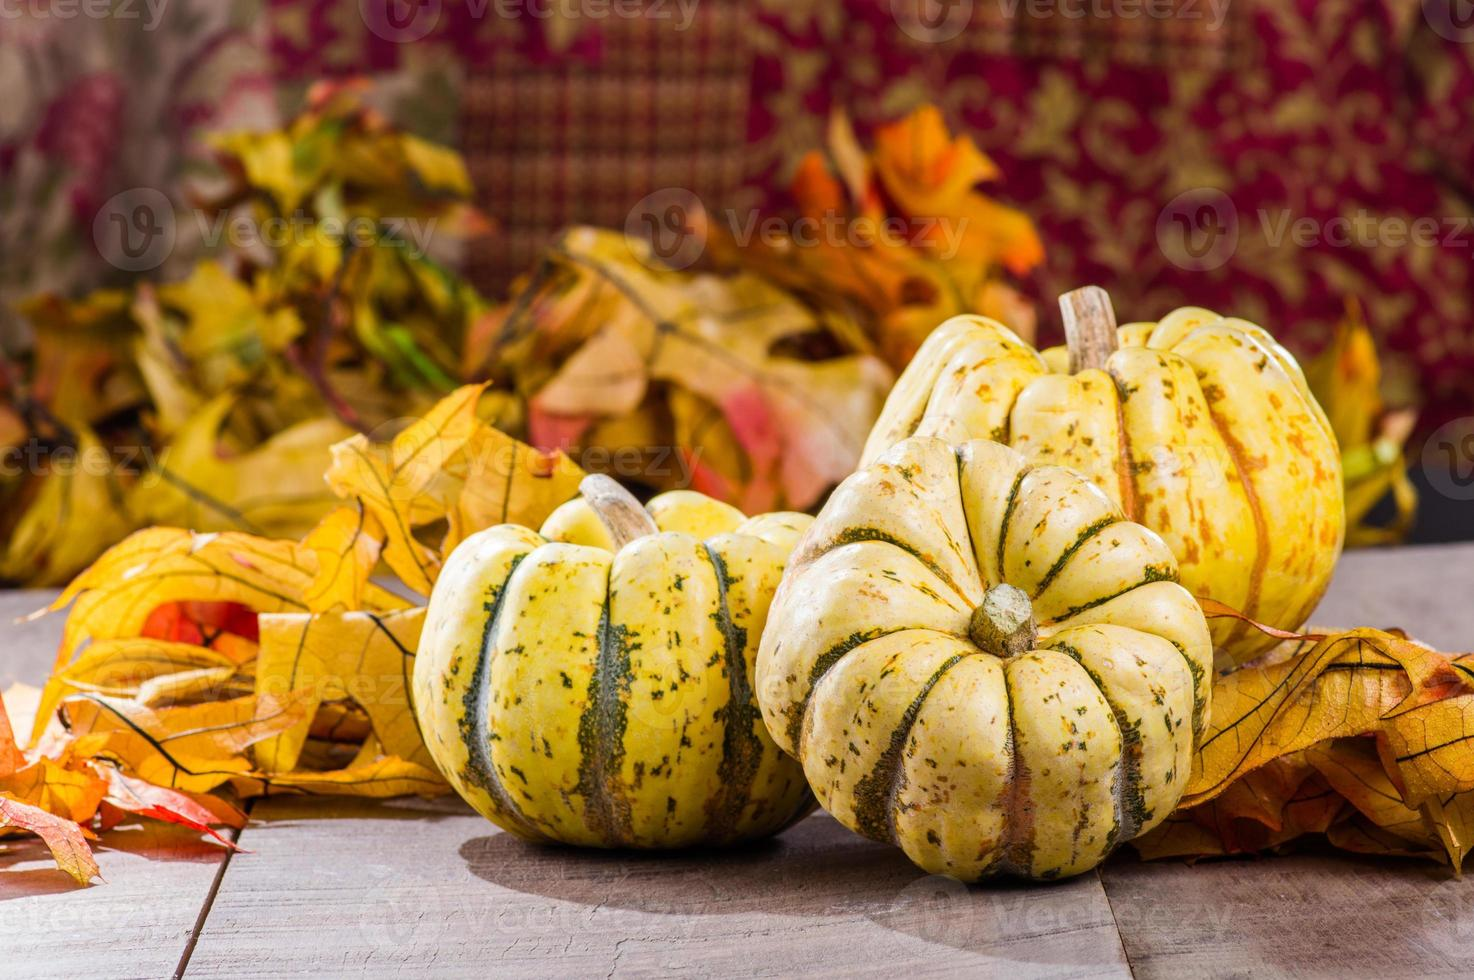 Fall squash with autumn leaves photo